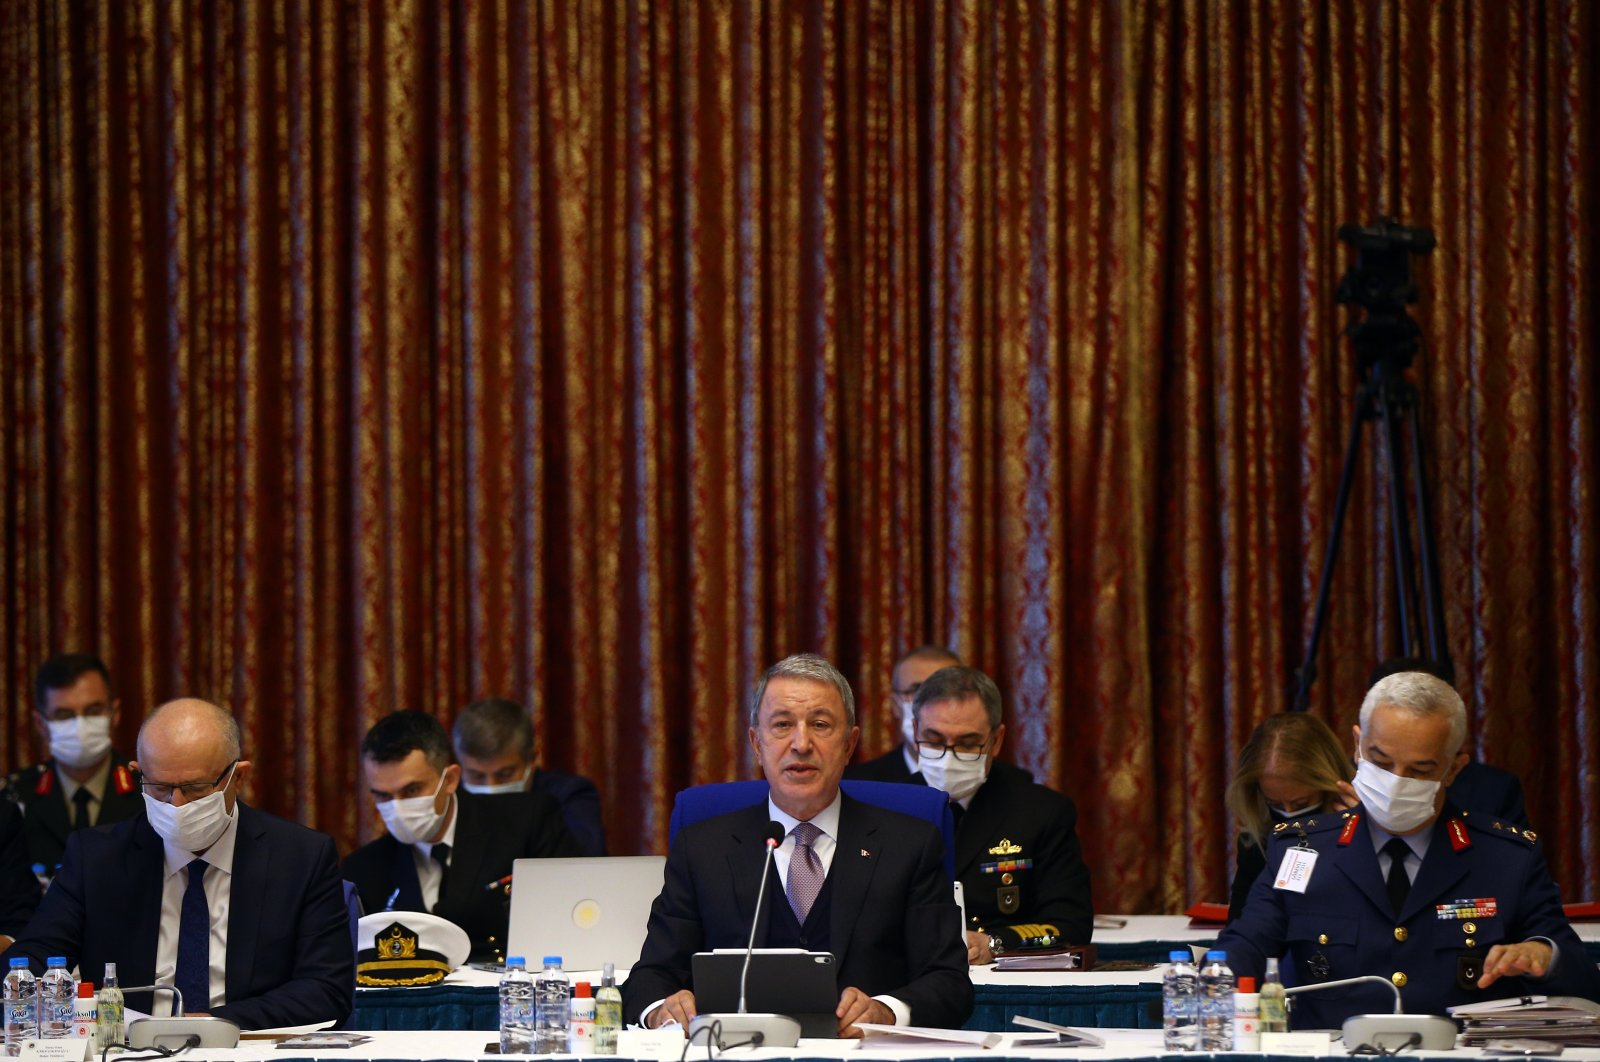 Defense Minister Hulusi Akar speaks during the Parliament's Planning and Budgetary Commission in Ankara, Turkey, Nov. 11, 2020. (AA Photo)